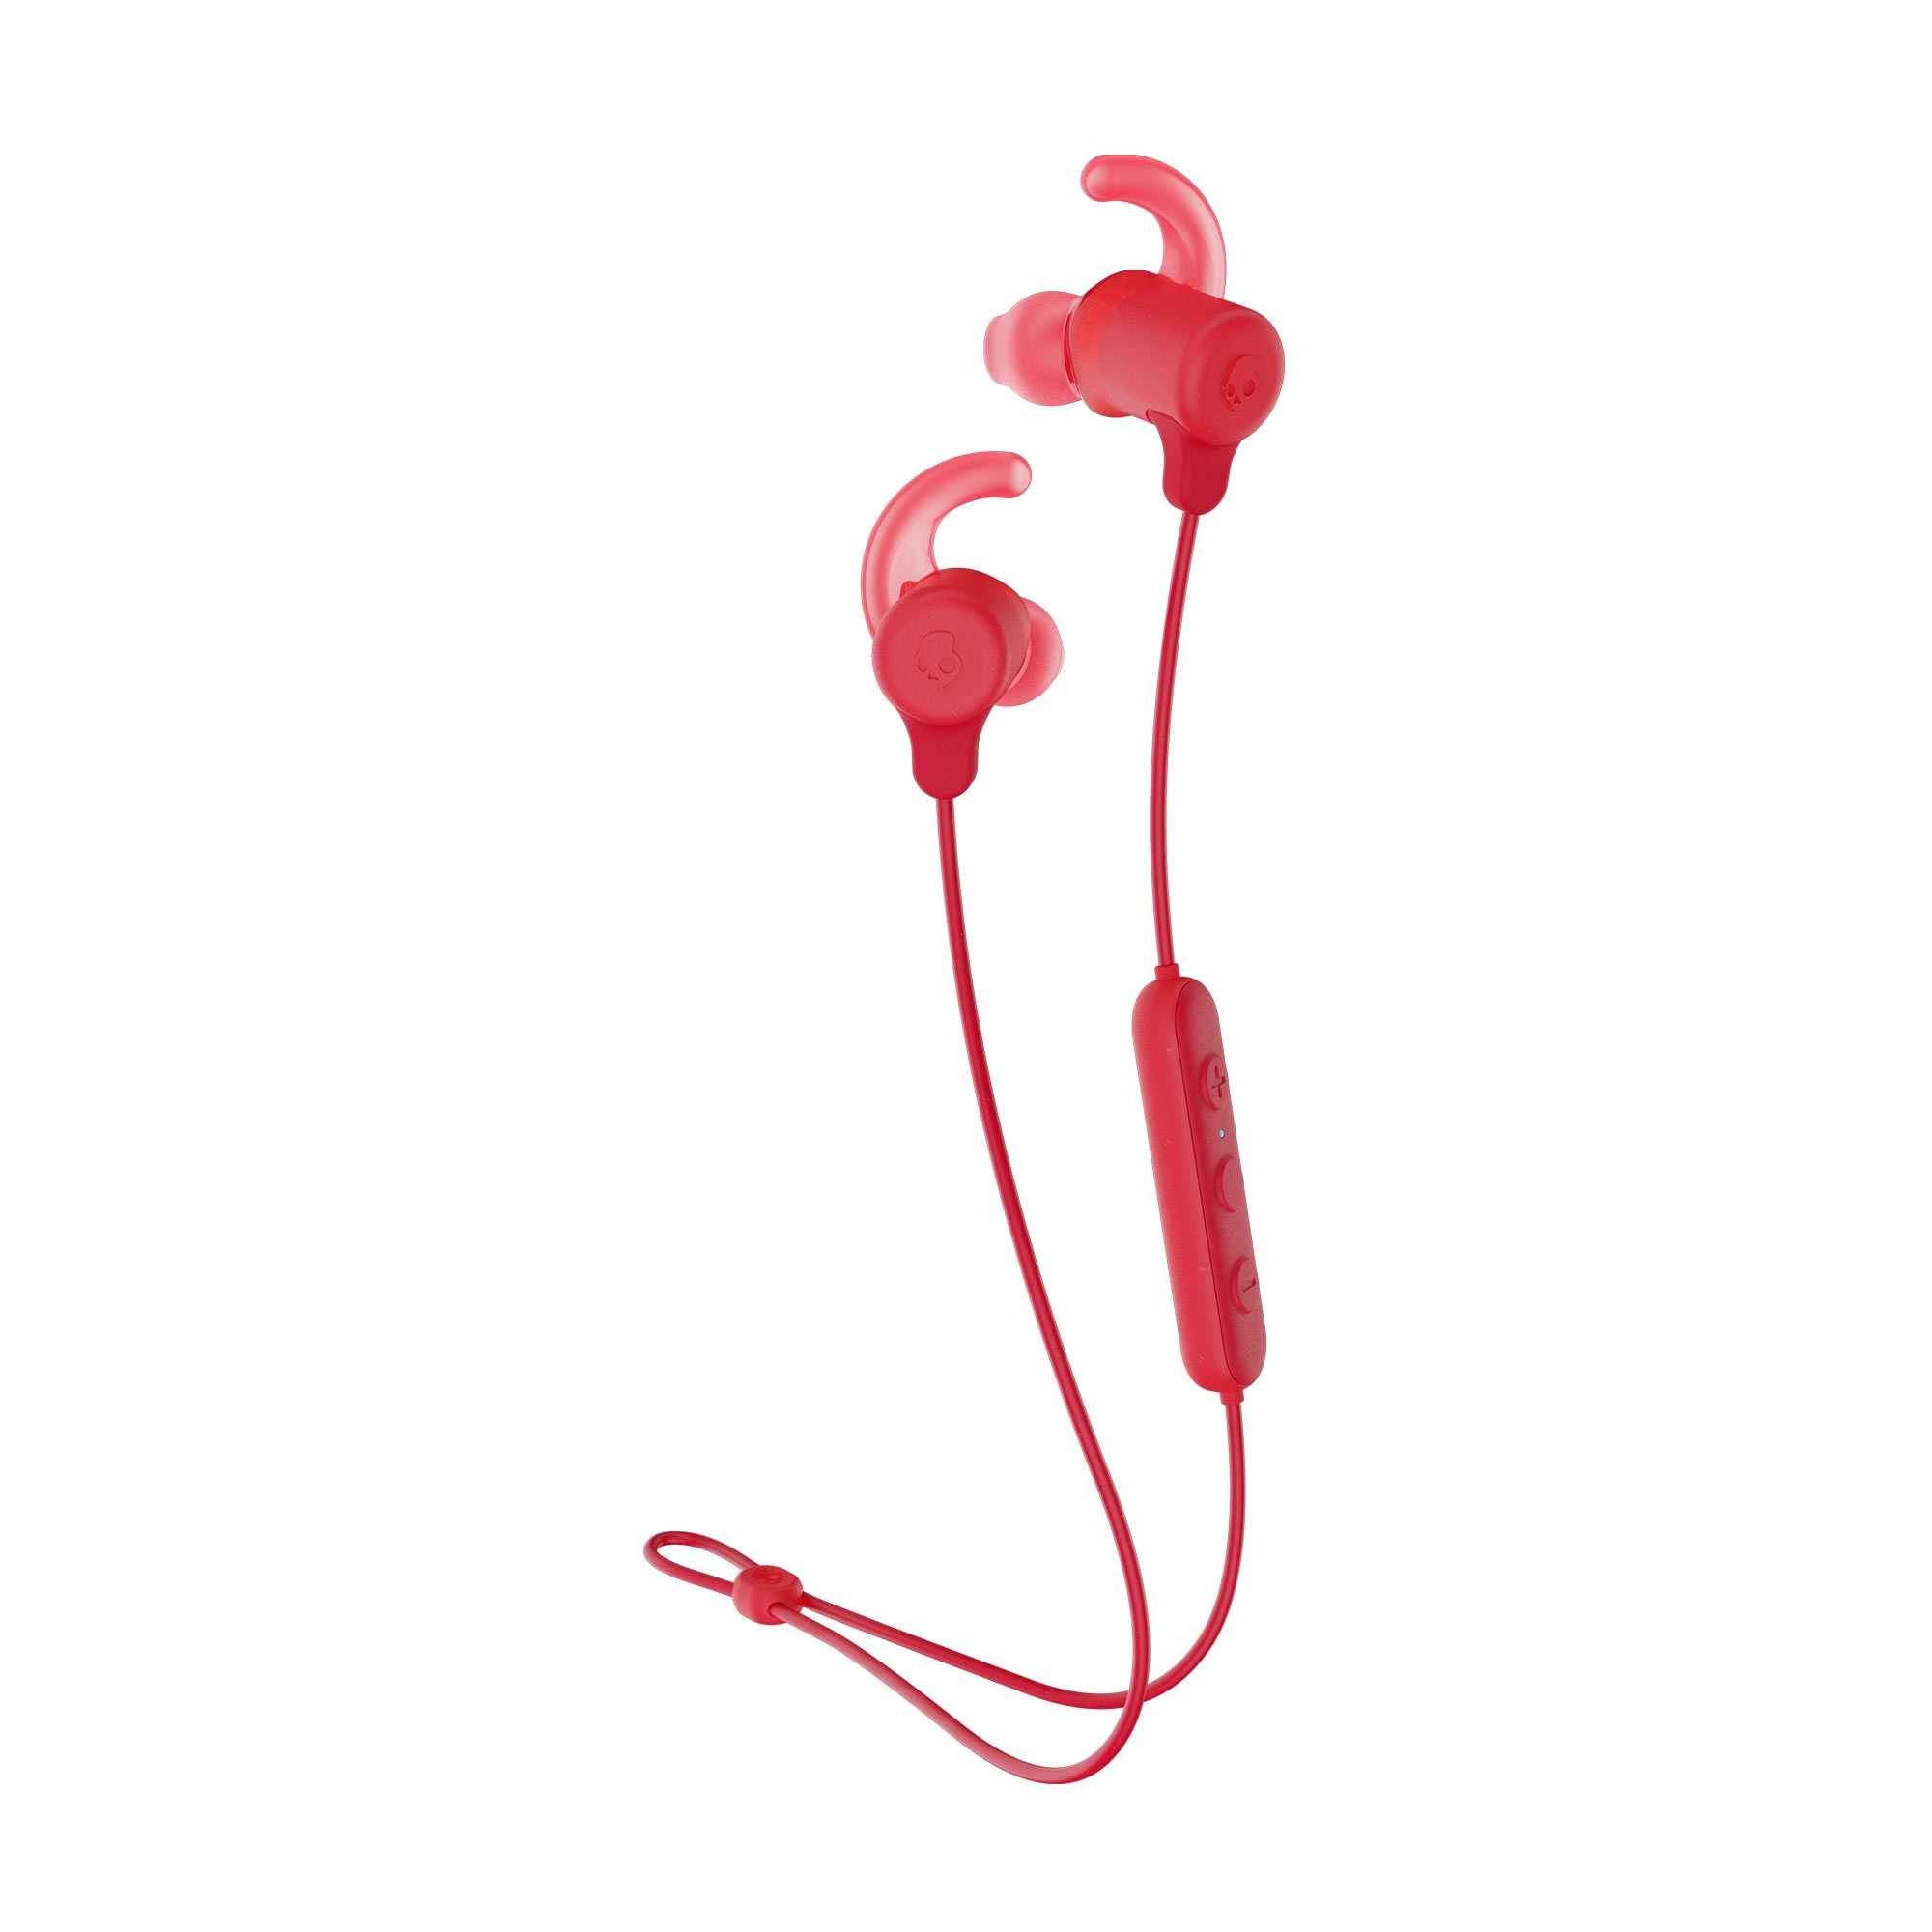 Skullcandy Jib+ Active Wireless BT Earbuds with Microphone – Red for $28